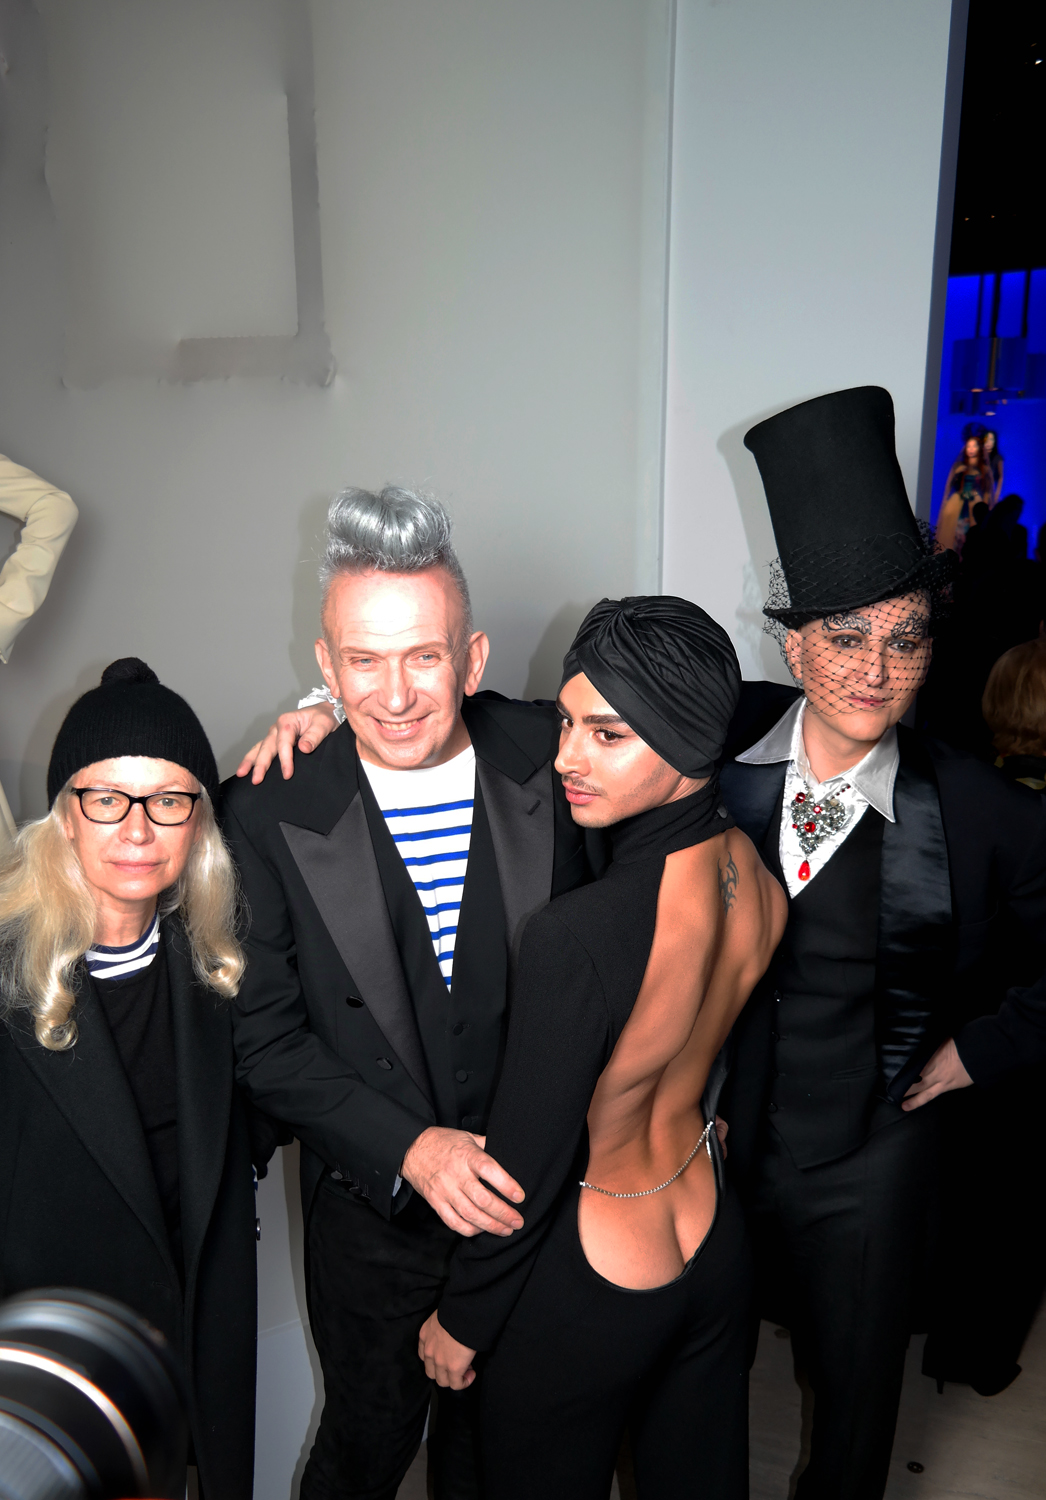 Jean-Paul-Gauthier-Ali-Mahdavi-vernissage-vip-exposition-Grand-palais-fashion-couture-sexy-photo-by-United-States-of-Paris-blog